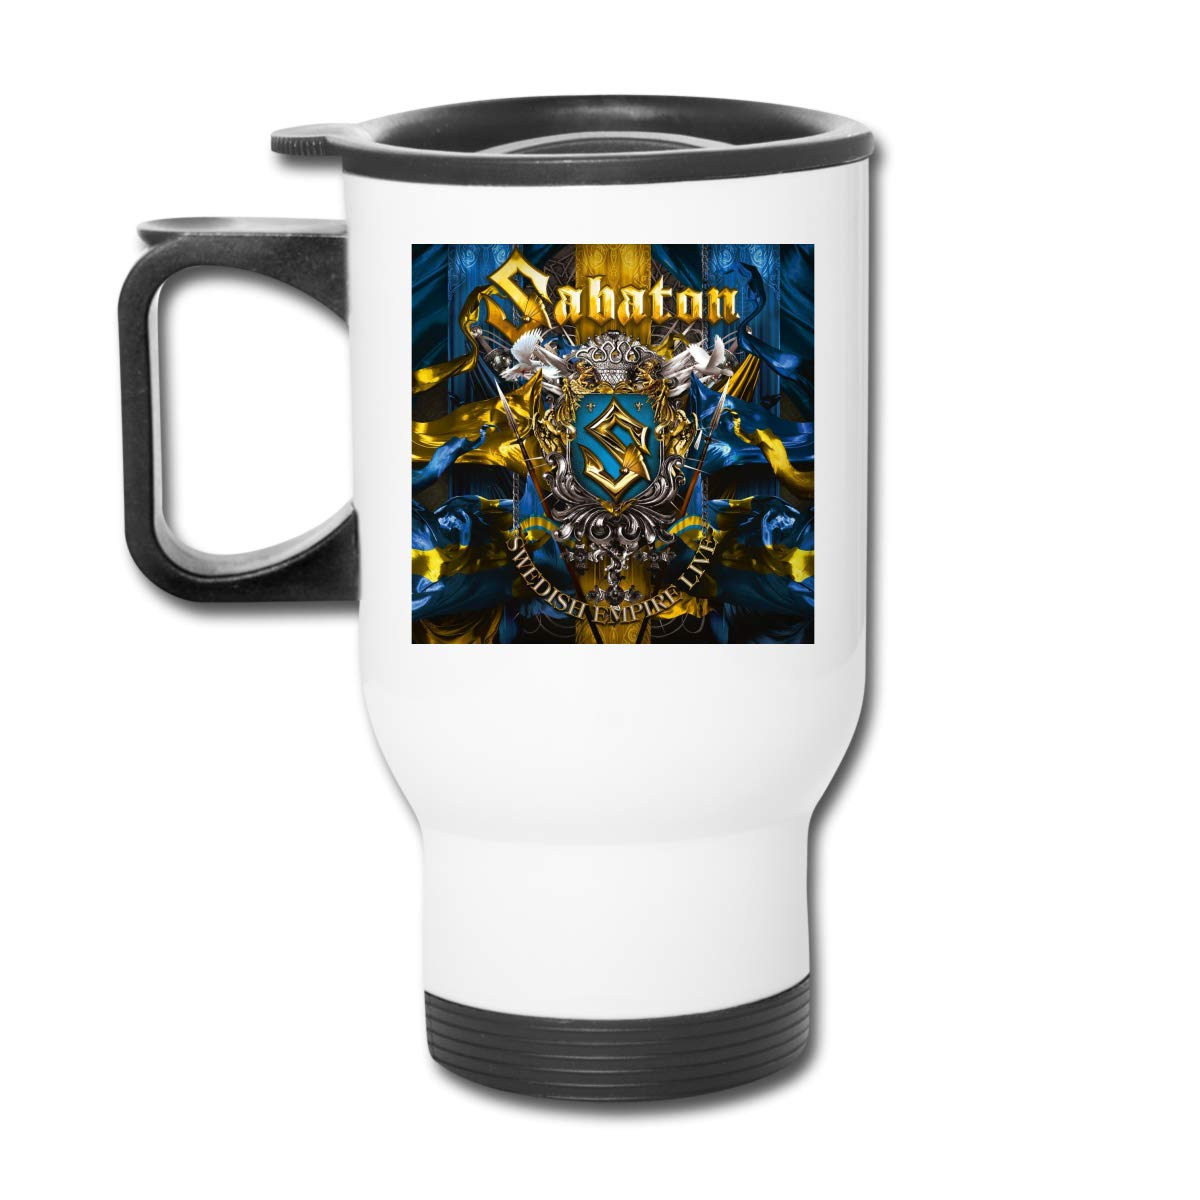 Amazon com: Sabaton Swedish Empire Live 16 Oz Stainless